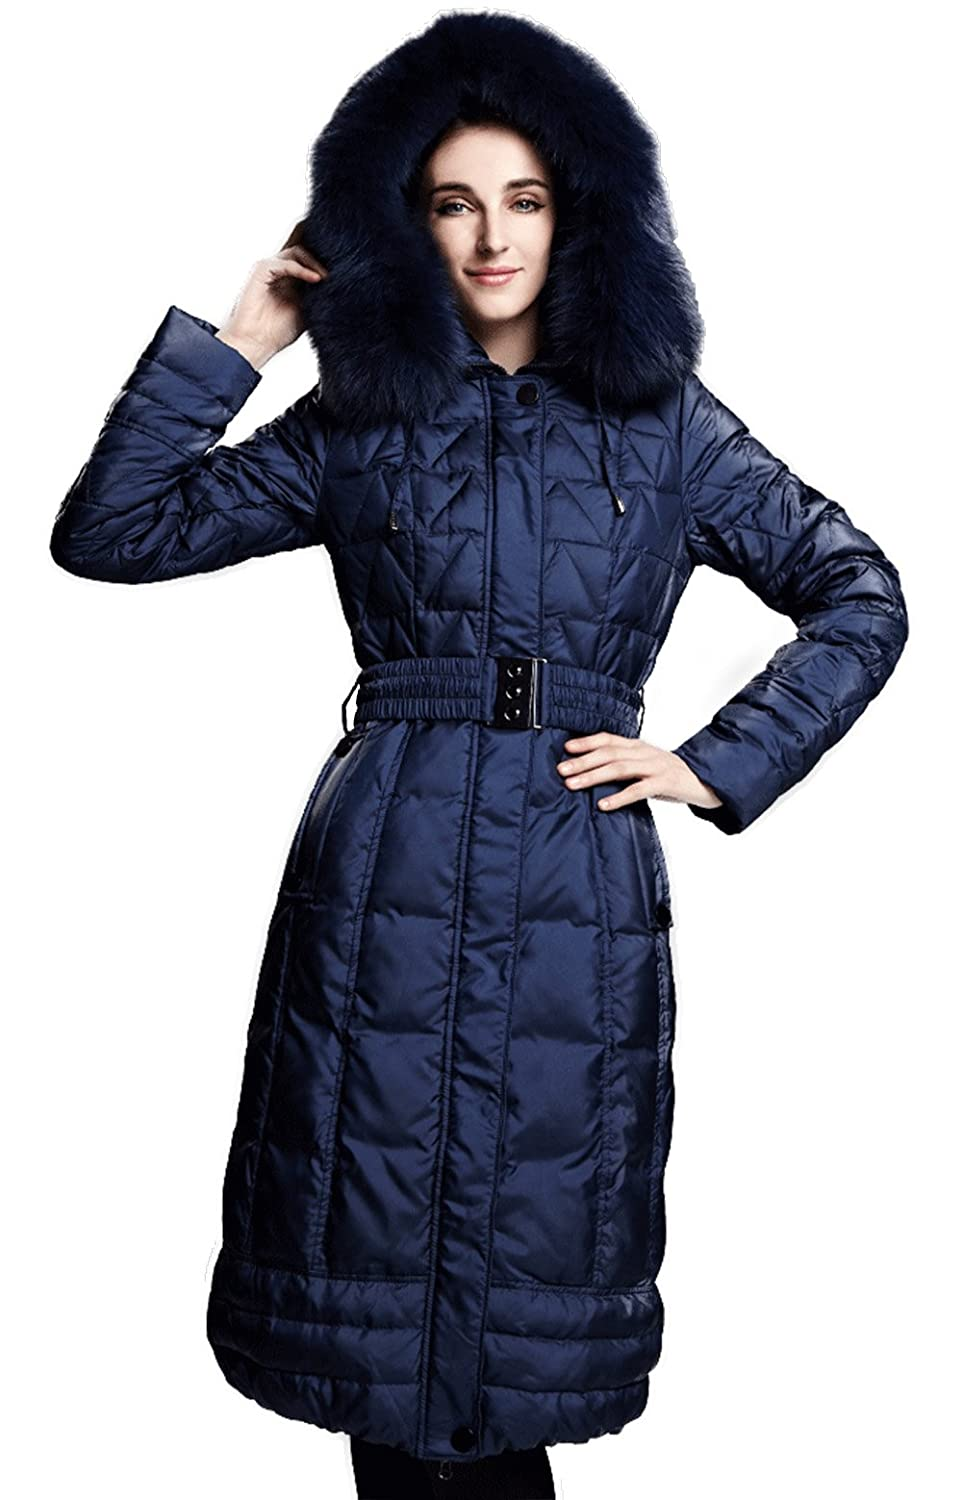 f958ada393f Amazon.com: Ncit Women's Belted Empire Line Fur Trim Puffer Quilted Down  Jacket Coat Black 3XL: Clothing